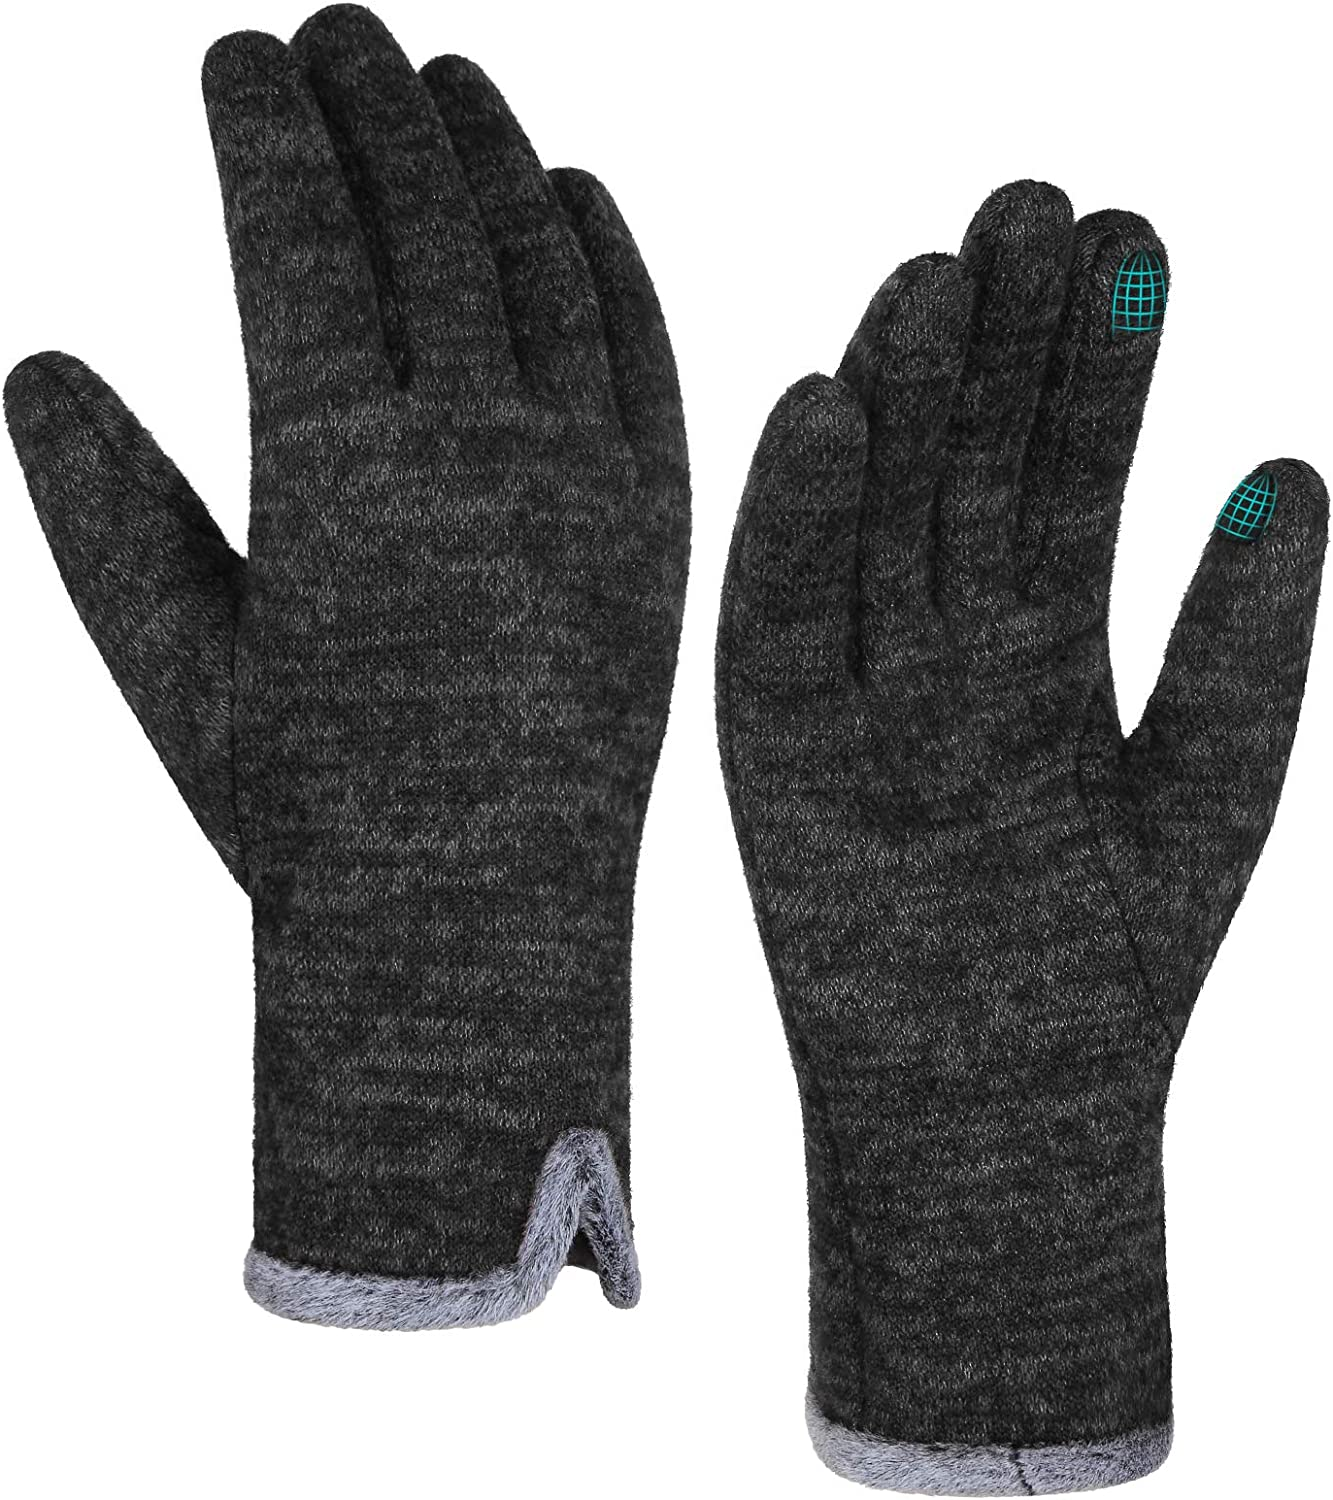 Achiou Gloves for Women Winter Touchscreen Warm Soft Comfortable Elastic Fluff Lined Texting Glove for Traveling, Working